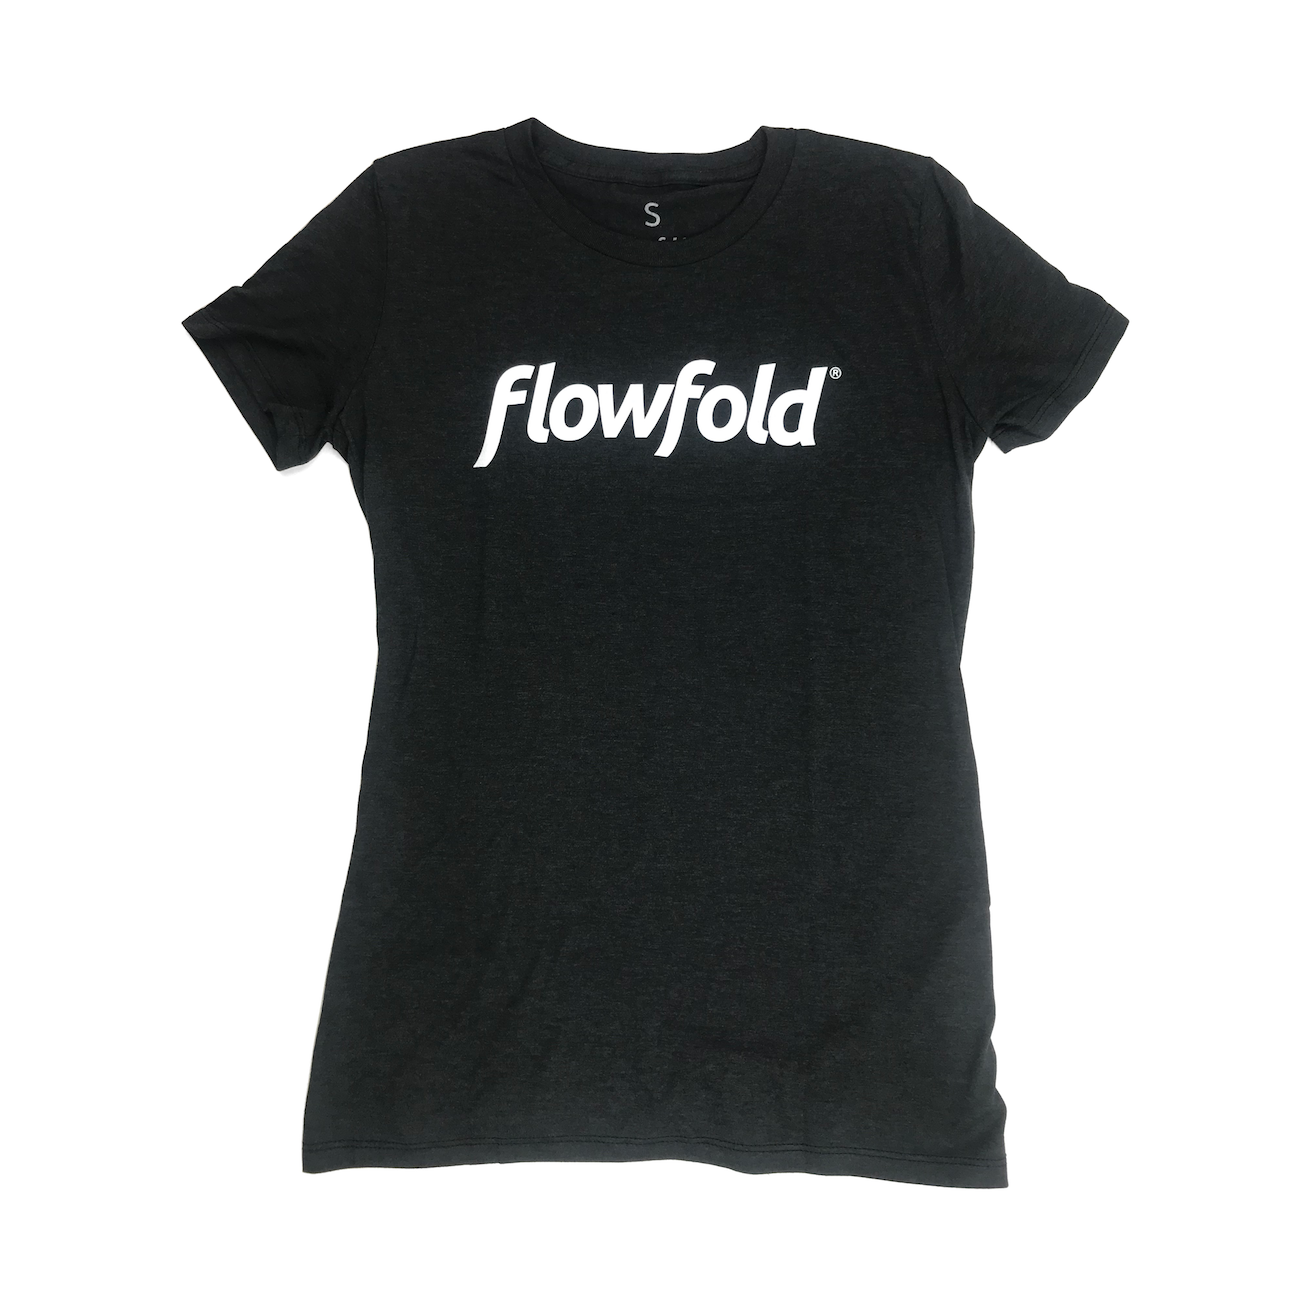 Women's Black Flowfold T-Shirt